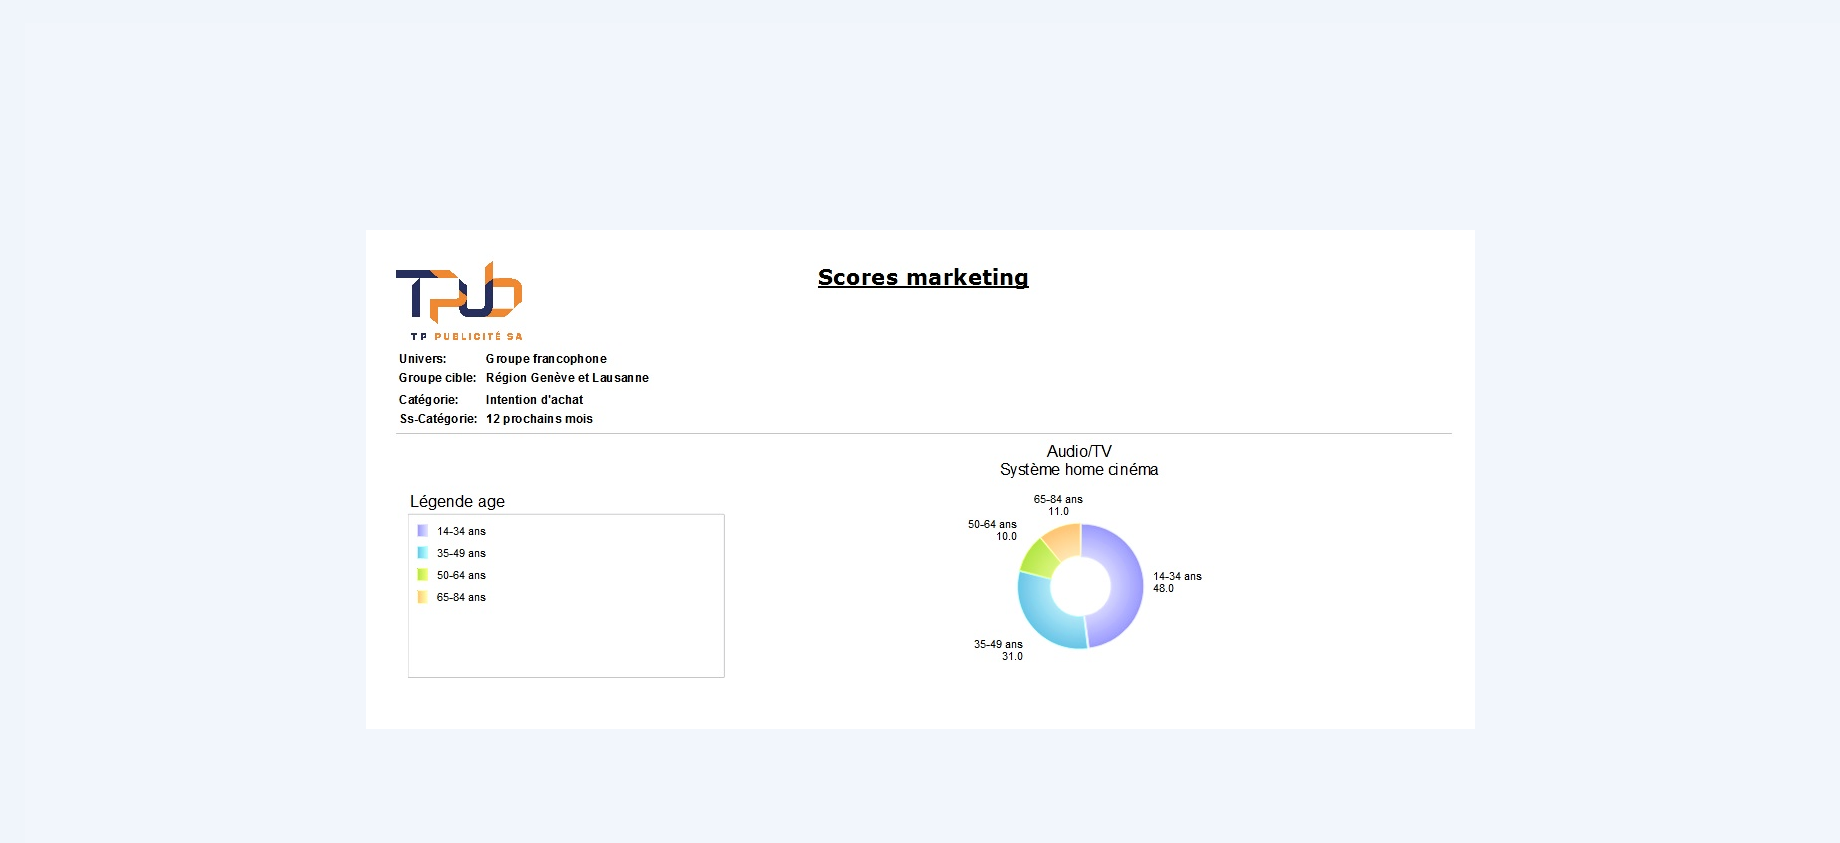 Score marketing: our new statistics tool!